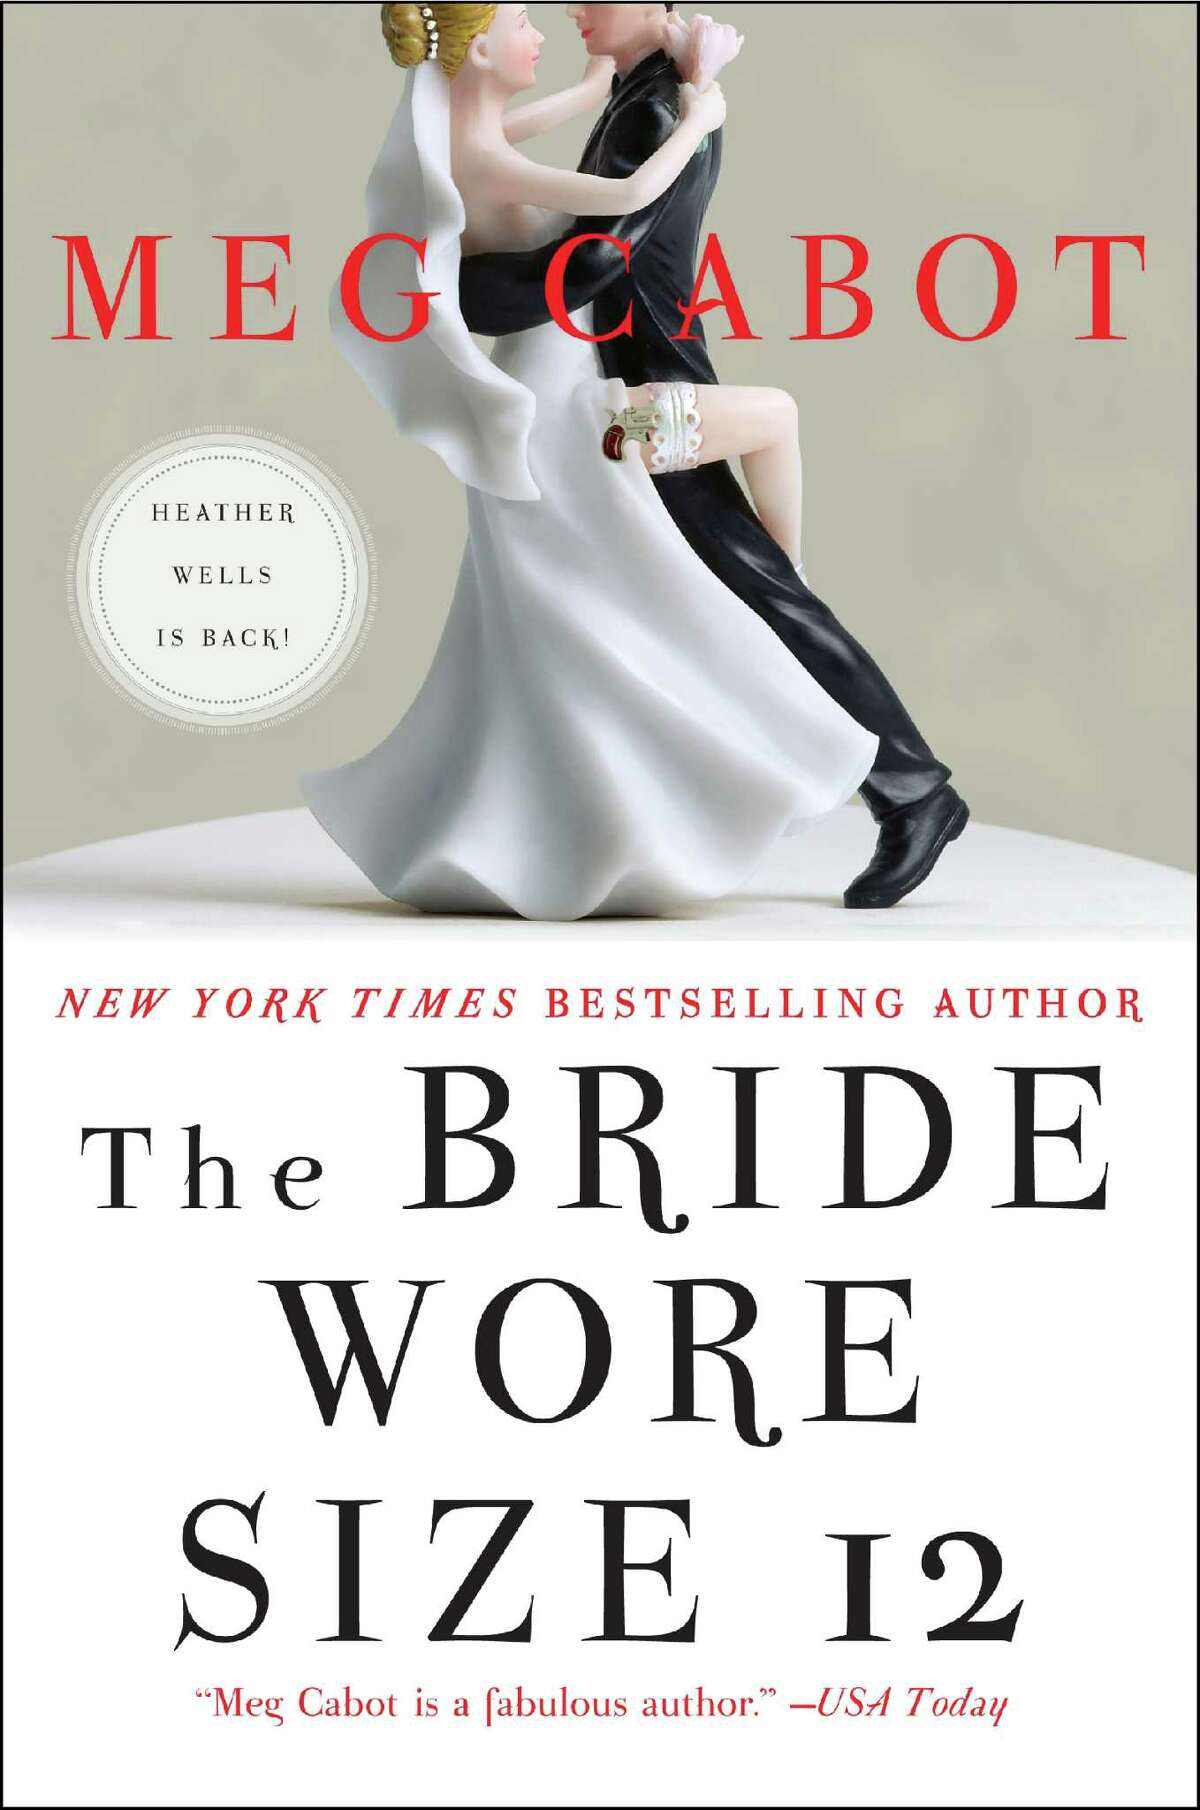 """Best known for the enormously successful young adult """"Princess Diaries"""" series, Meg Cabot has branched out into other genres in recent years. Her new novel """"The Bride Wore Size 12"""" is a murder mystery set in a New York City."""